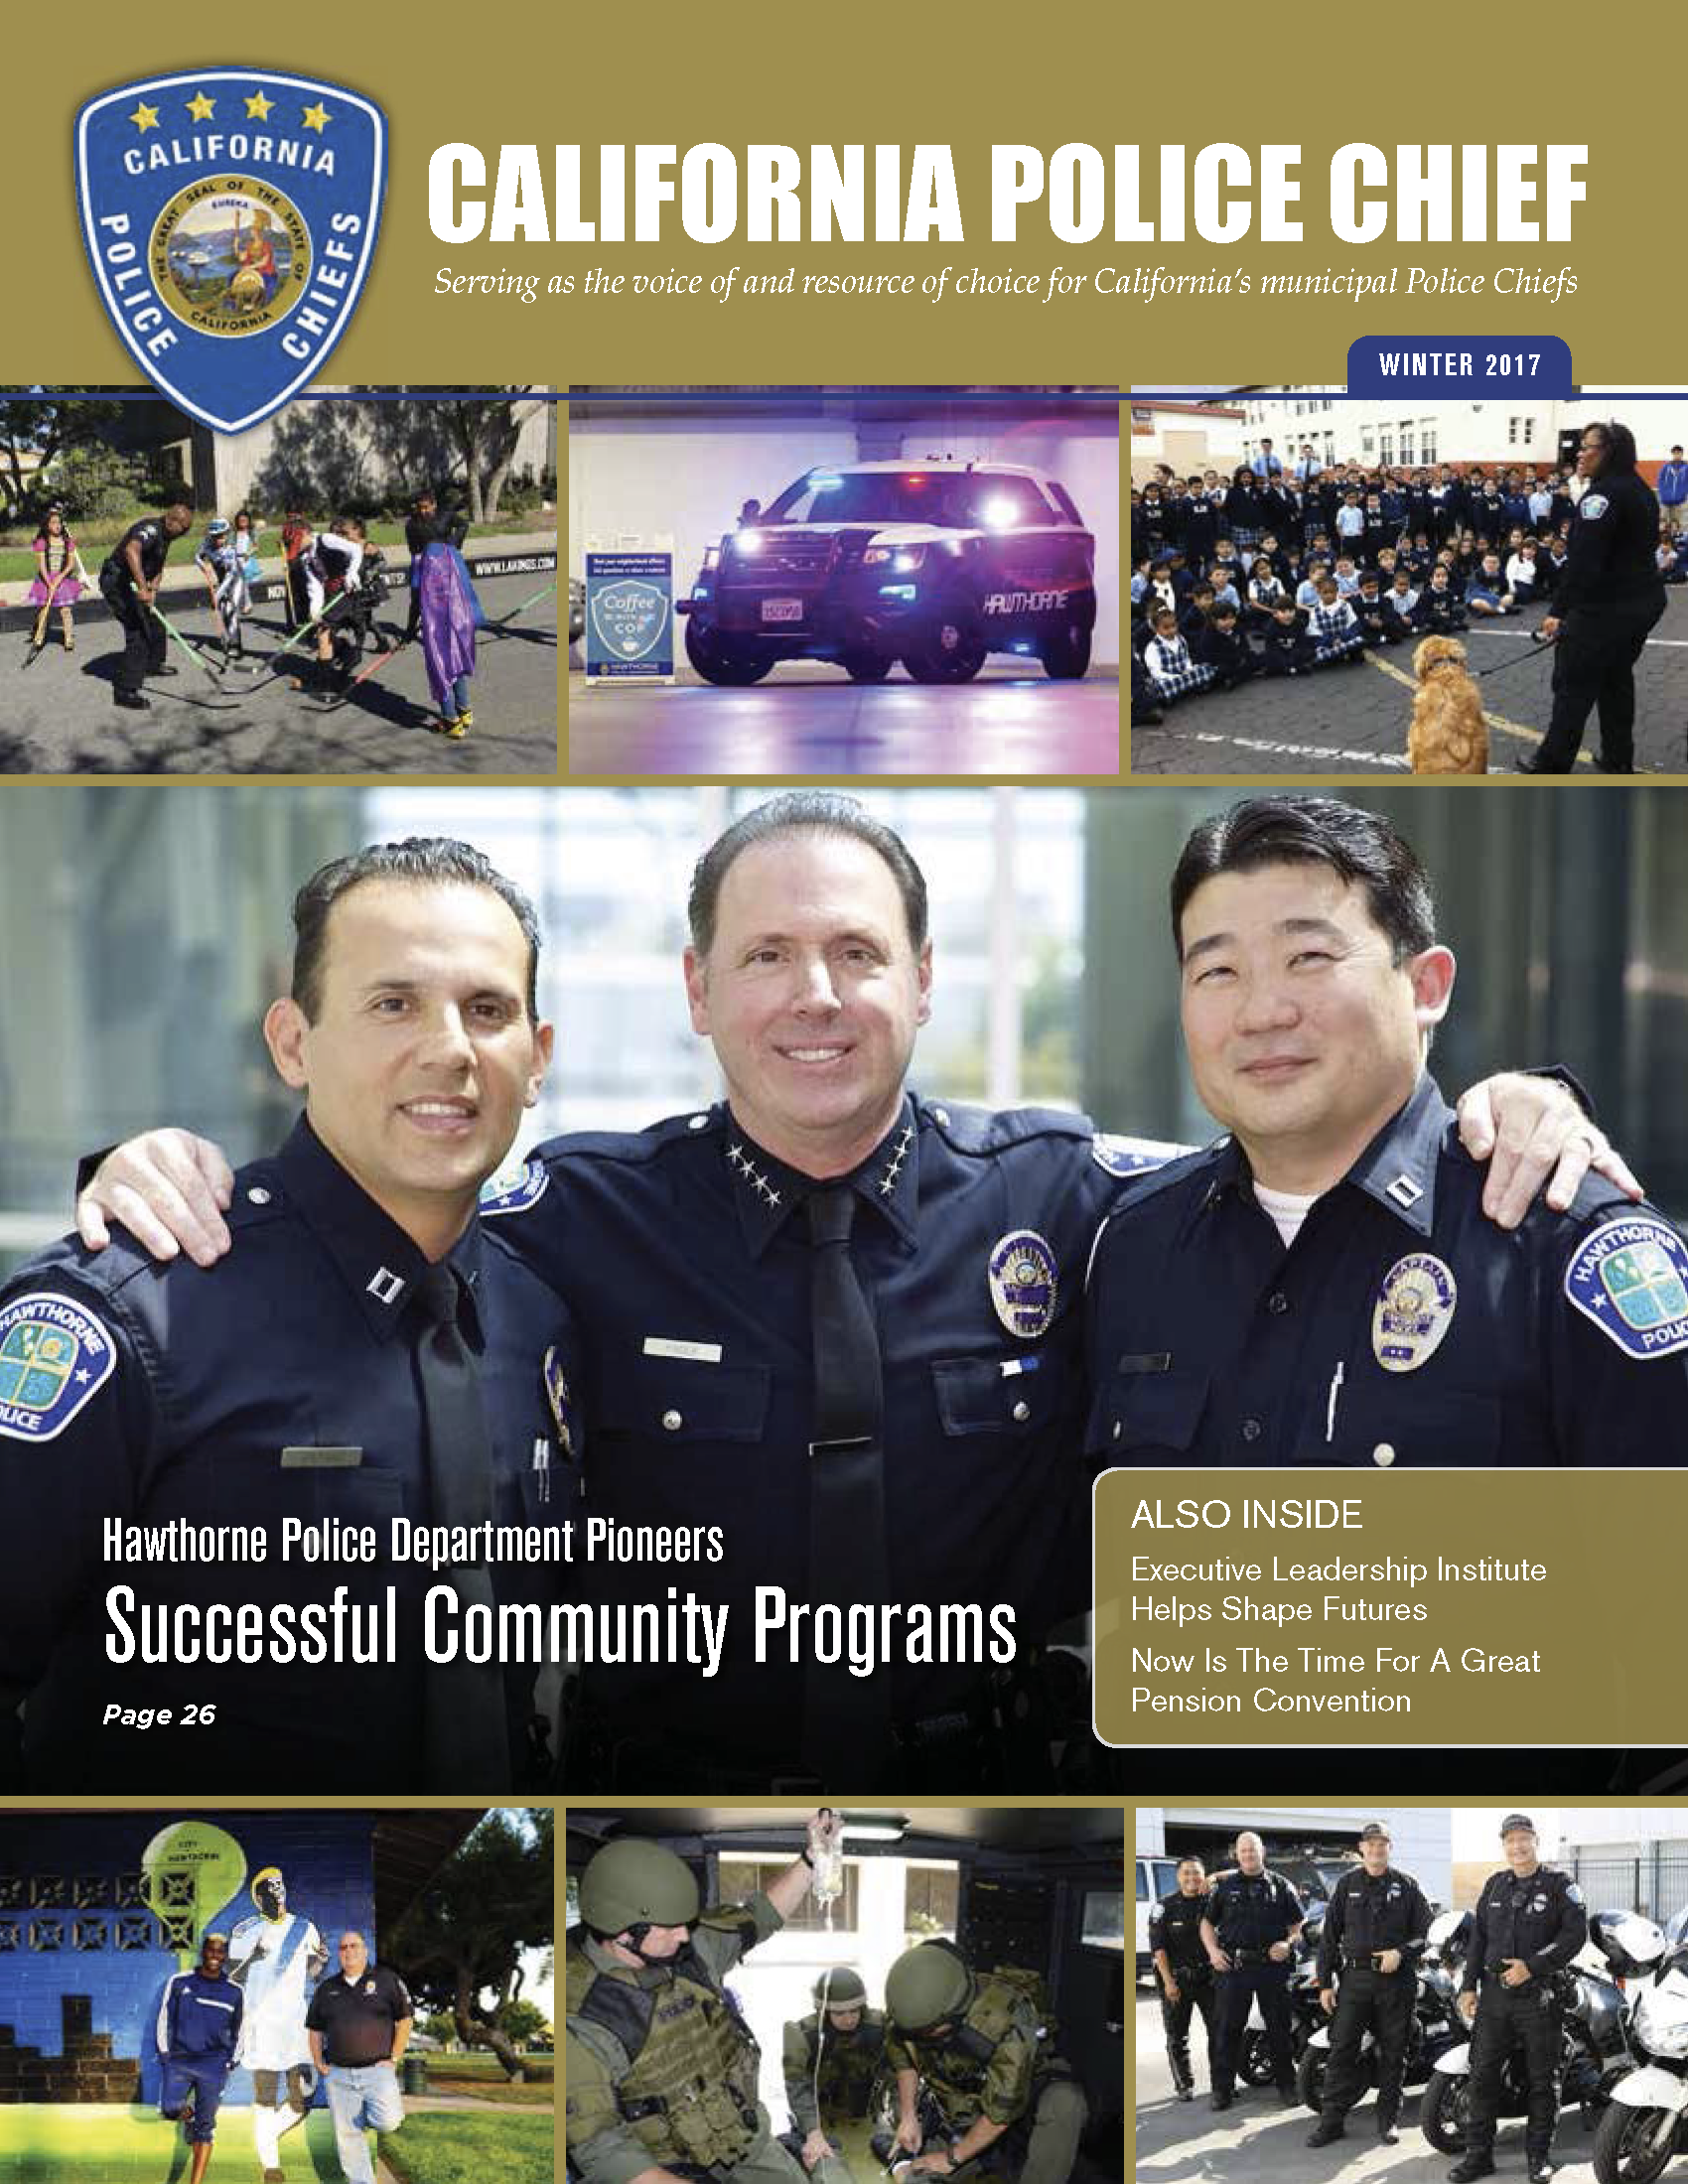 California+Police+Chief-+Fall+2013+CPCA_2017_Winter+Magazine+Final_Page_1.png